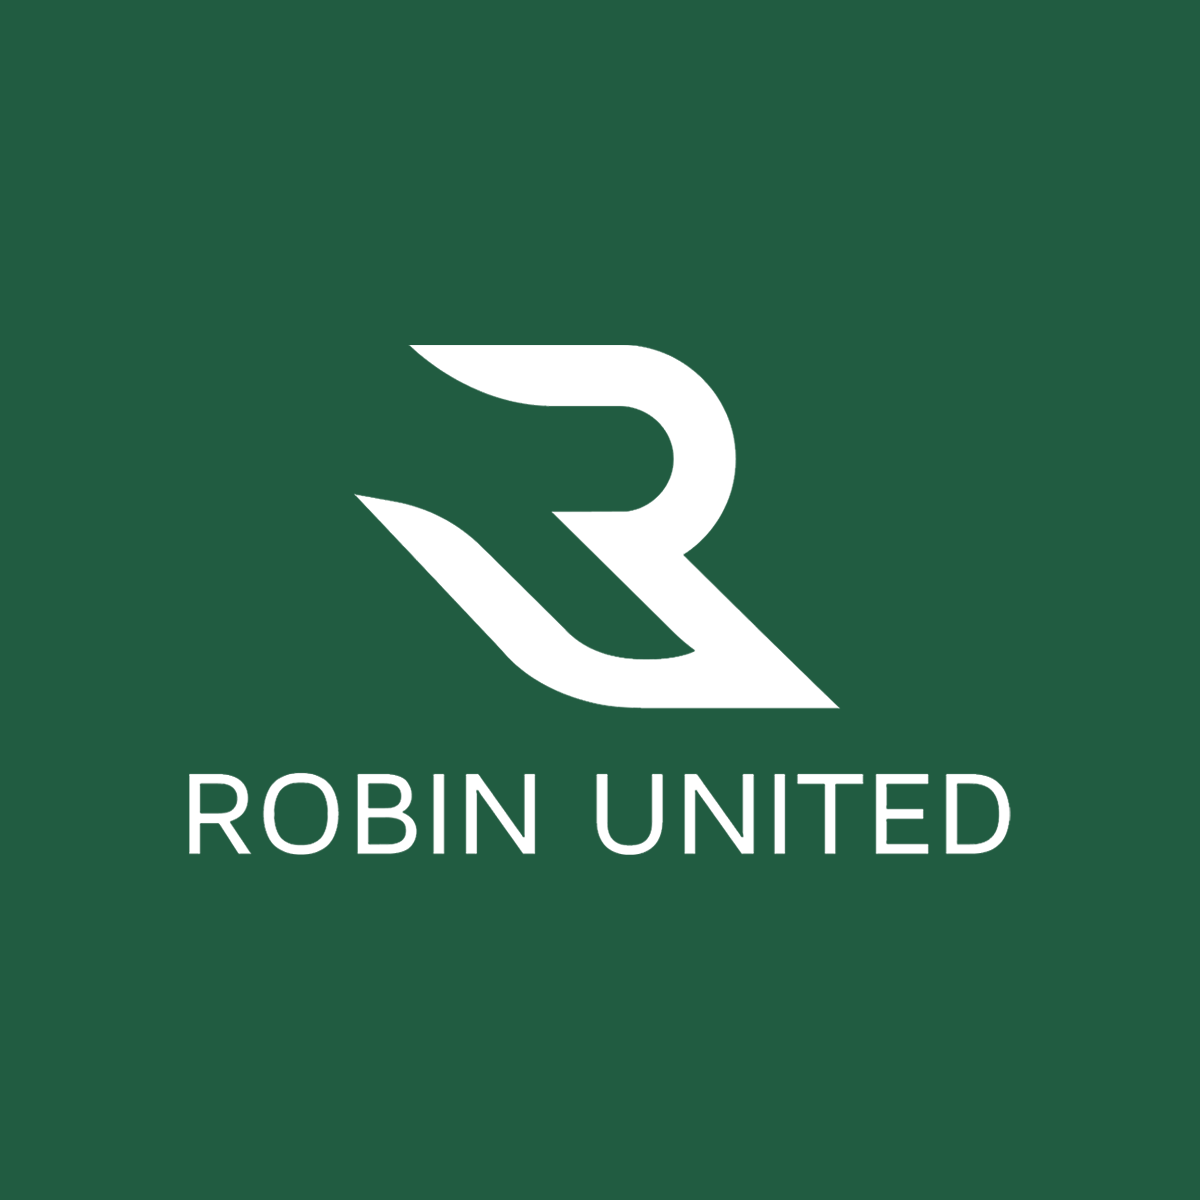 Robin United